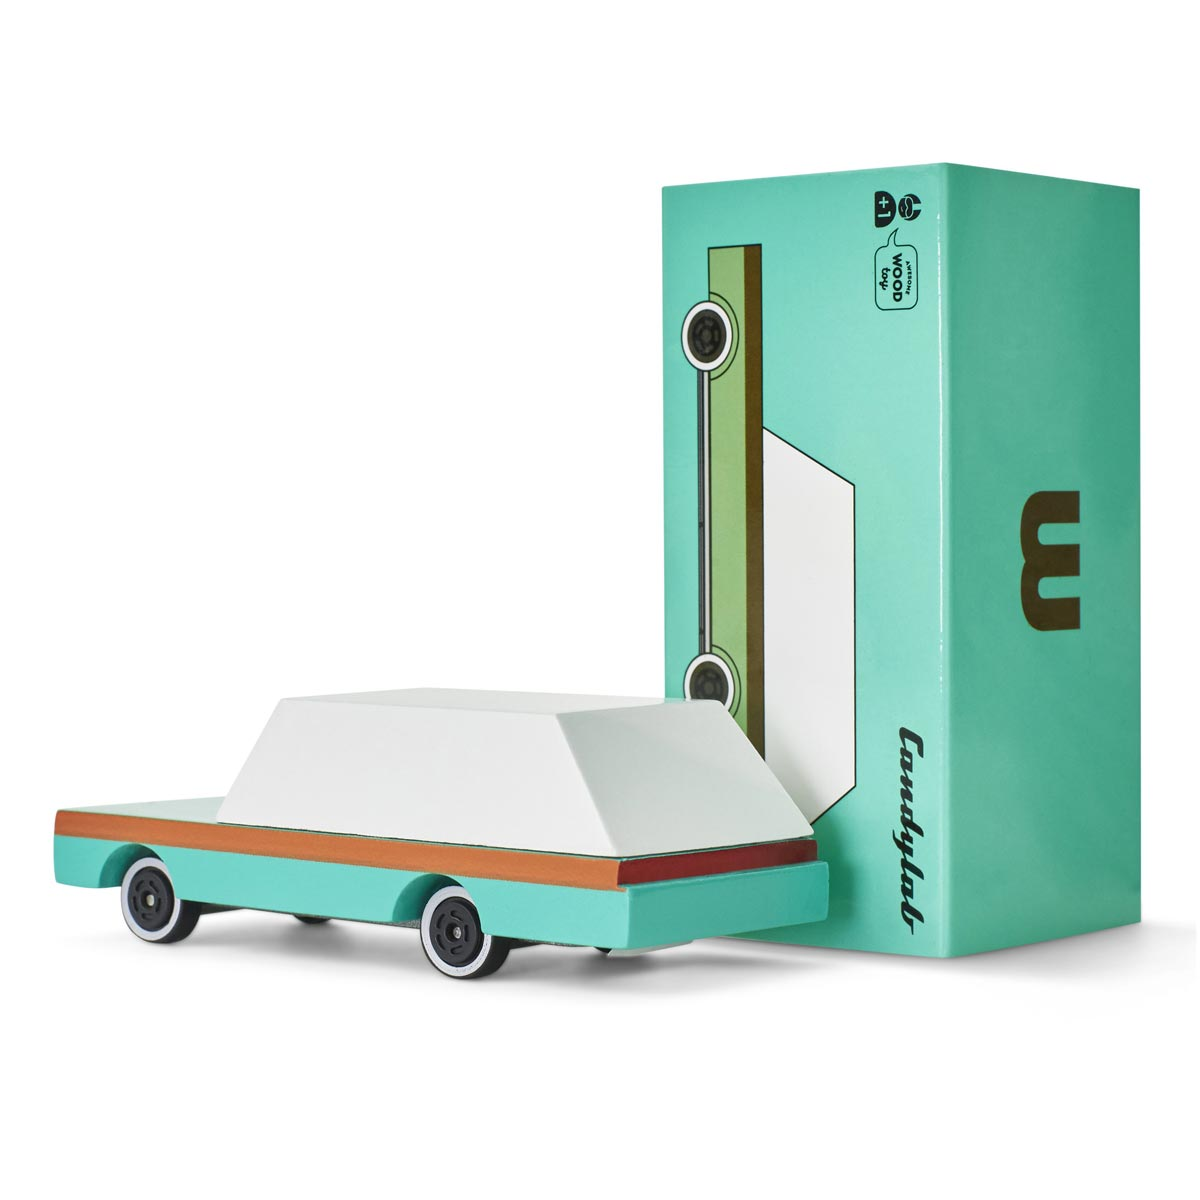 Candylab's Candycar in Teal Wagon • Vintage Wooden Station Wagon Car • Whimsical, Modern, Non-Toxic